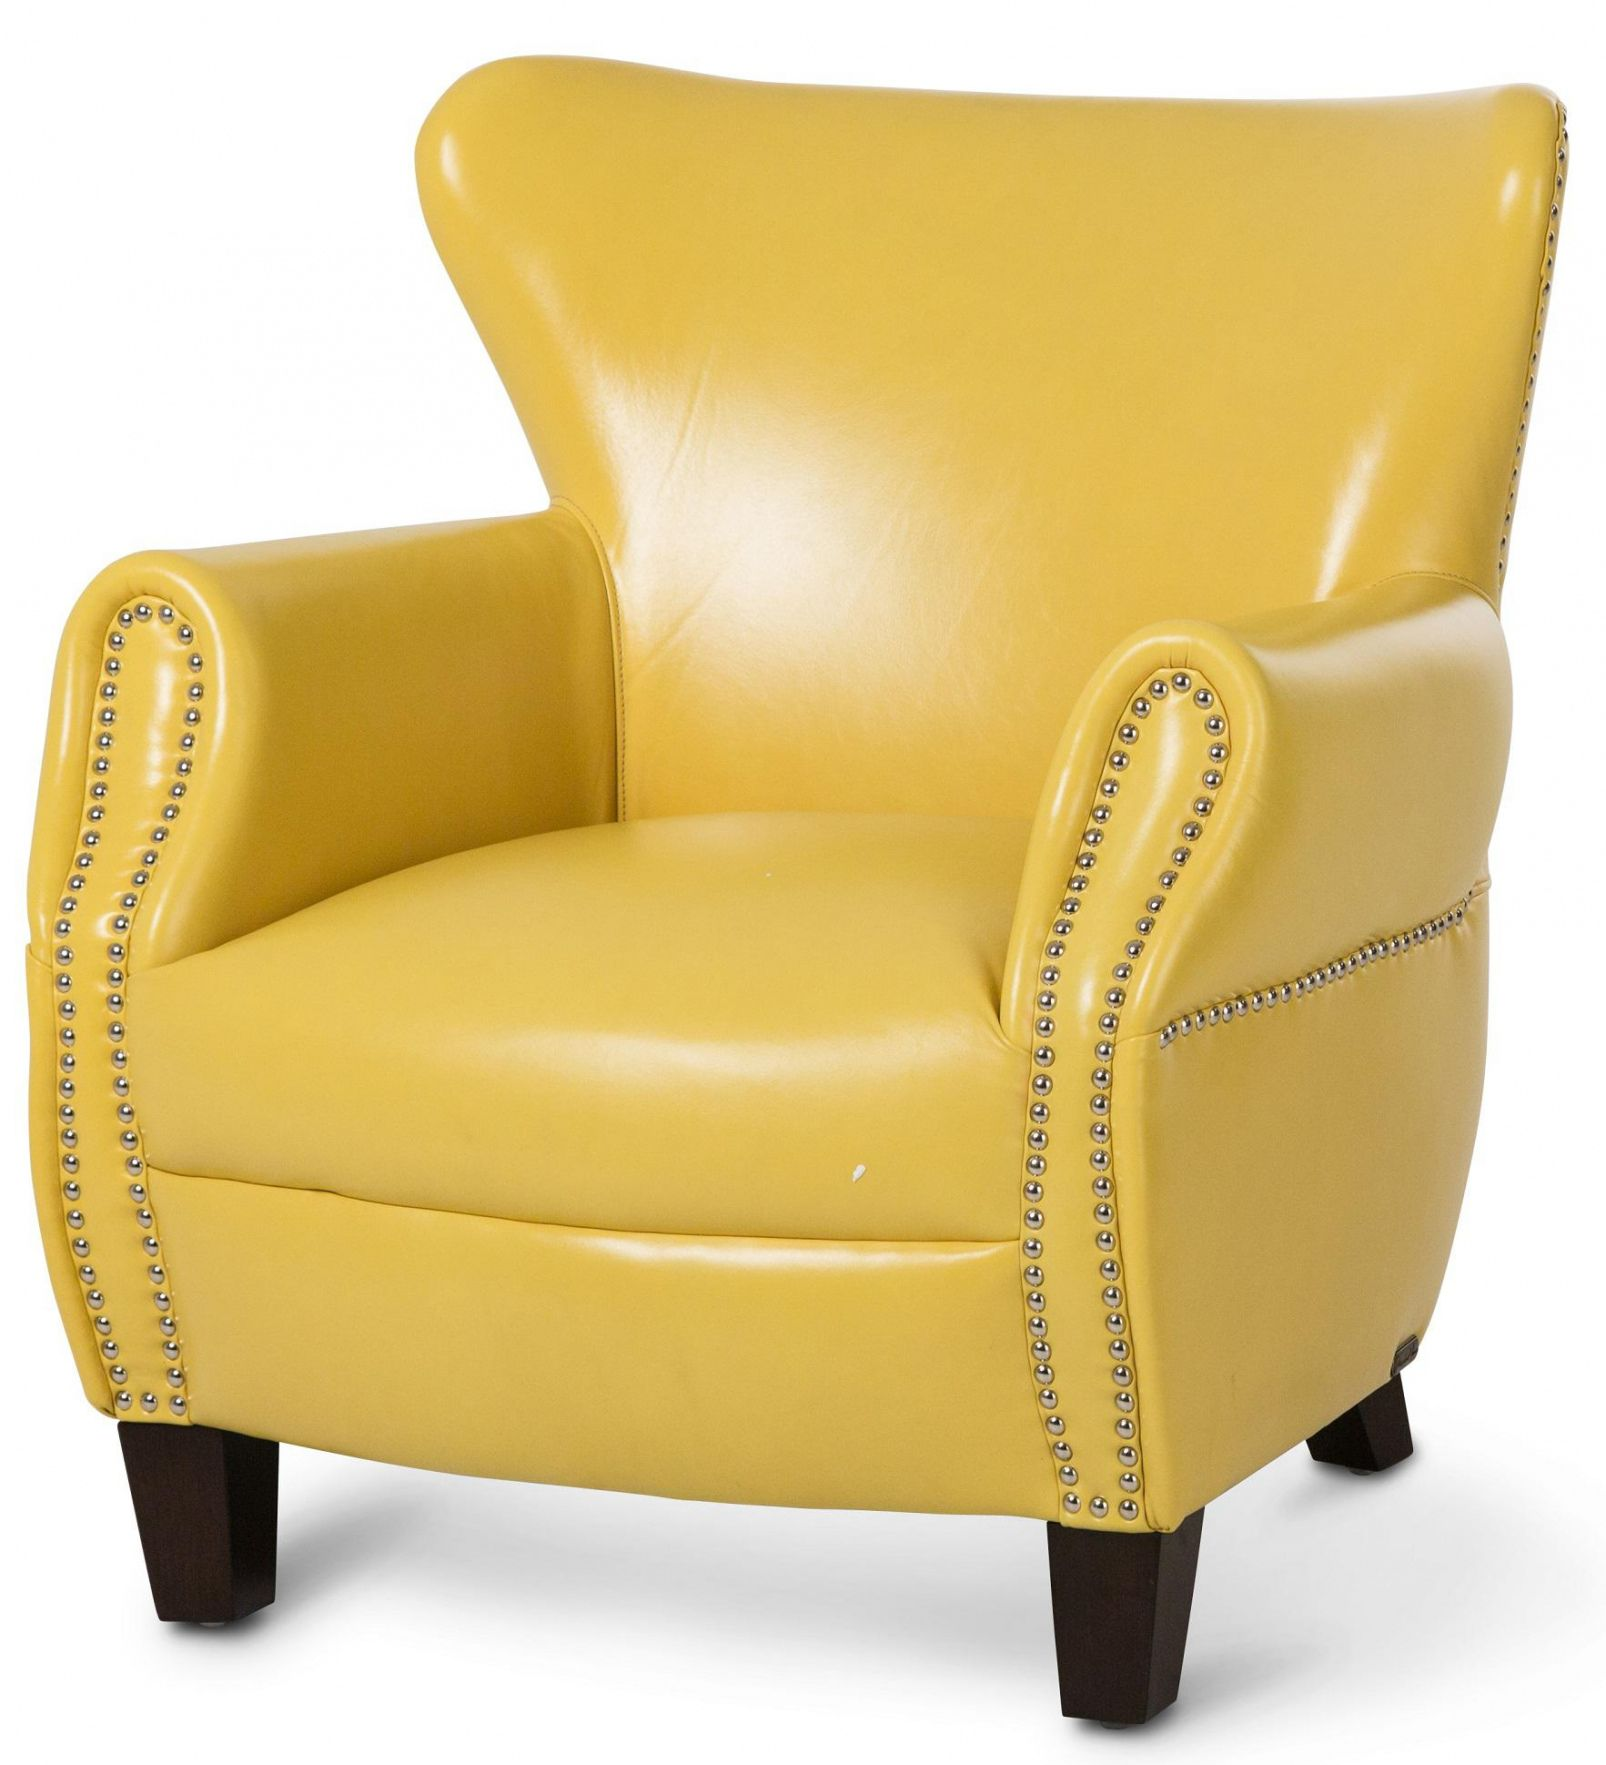 Park Art|My WordPress Blog_Yellow Chair Covers For Sale